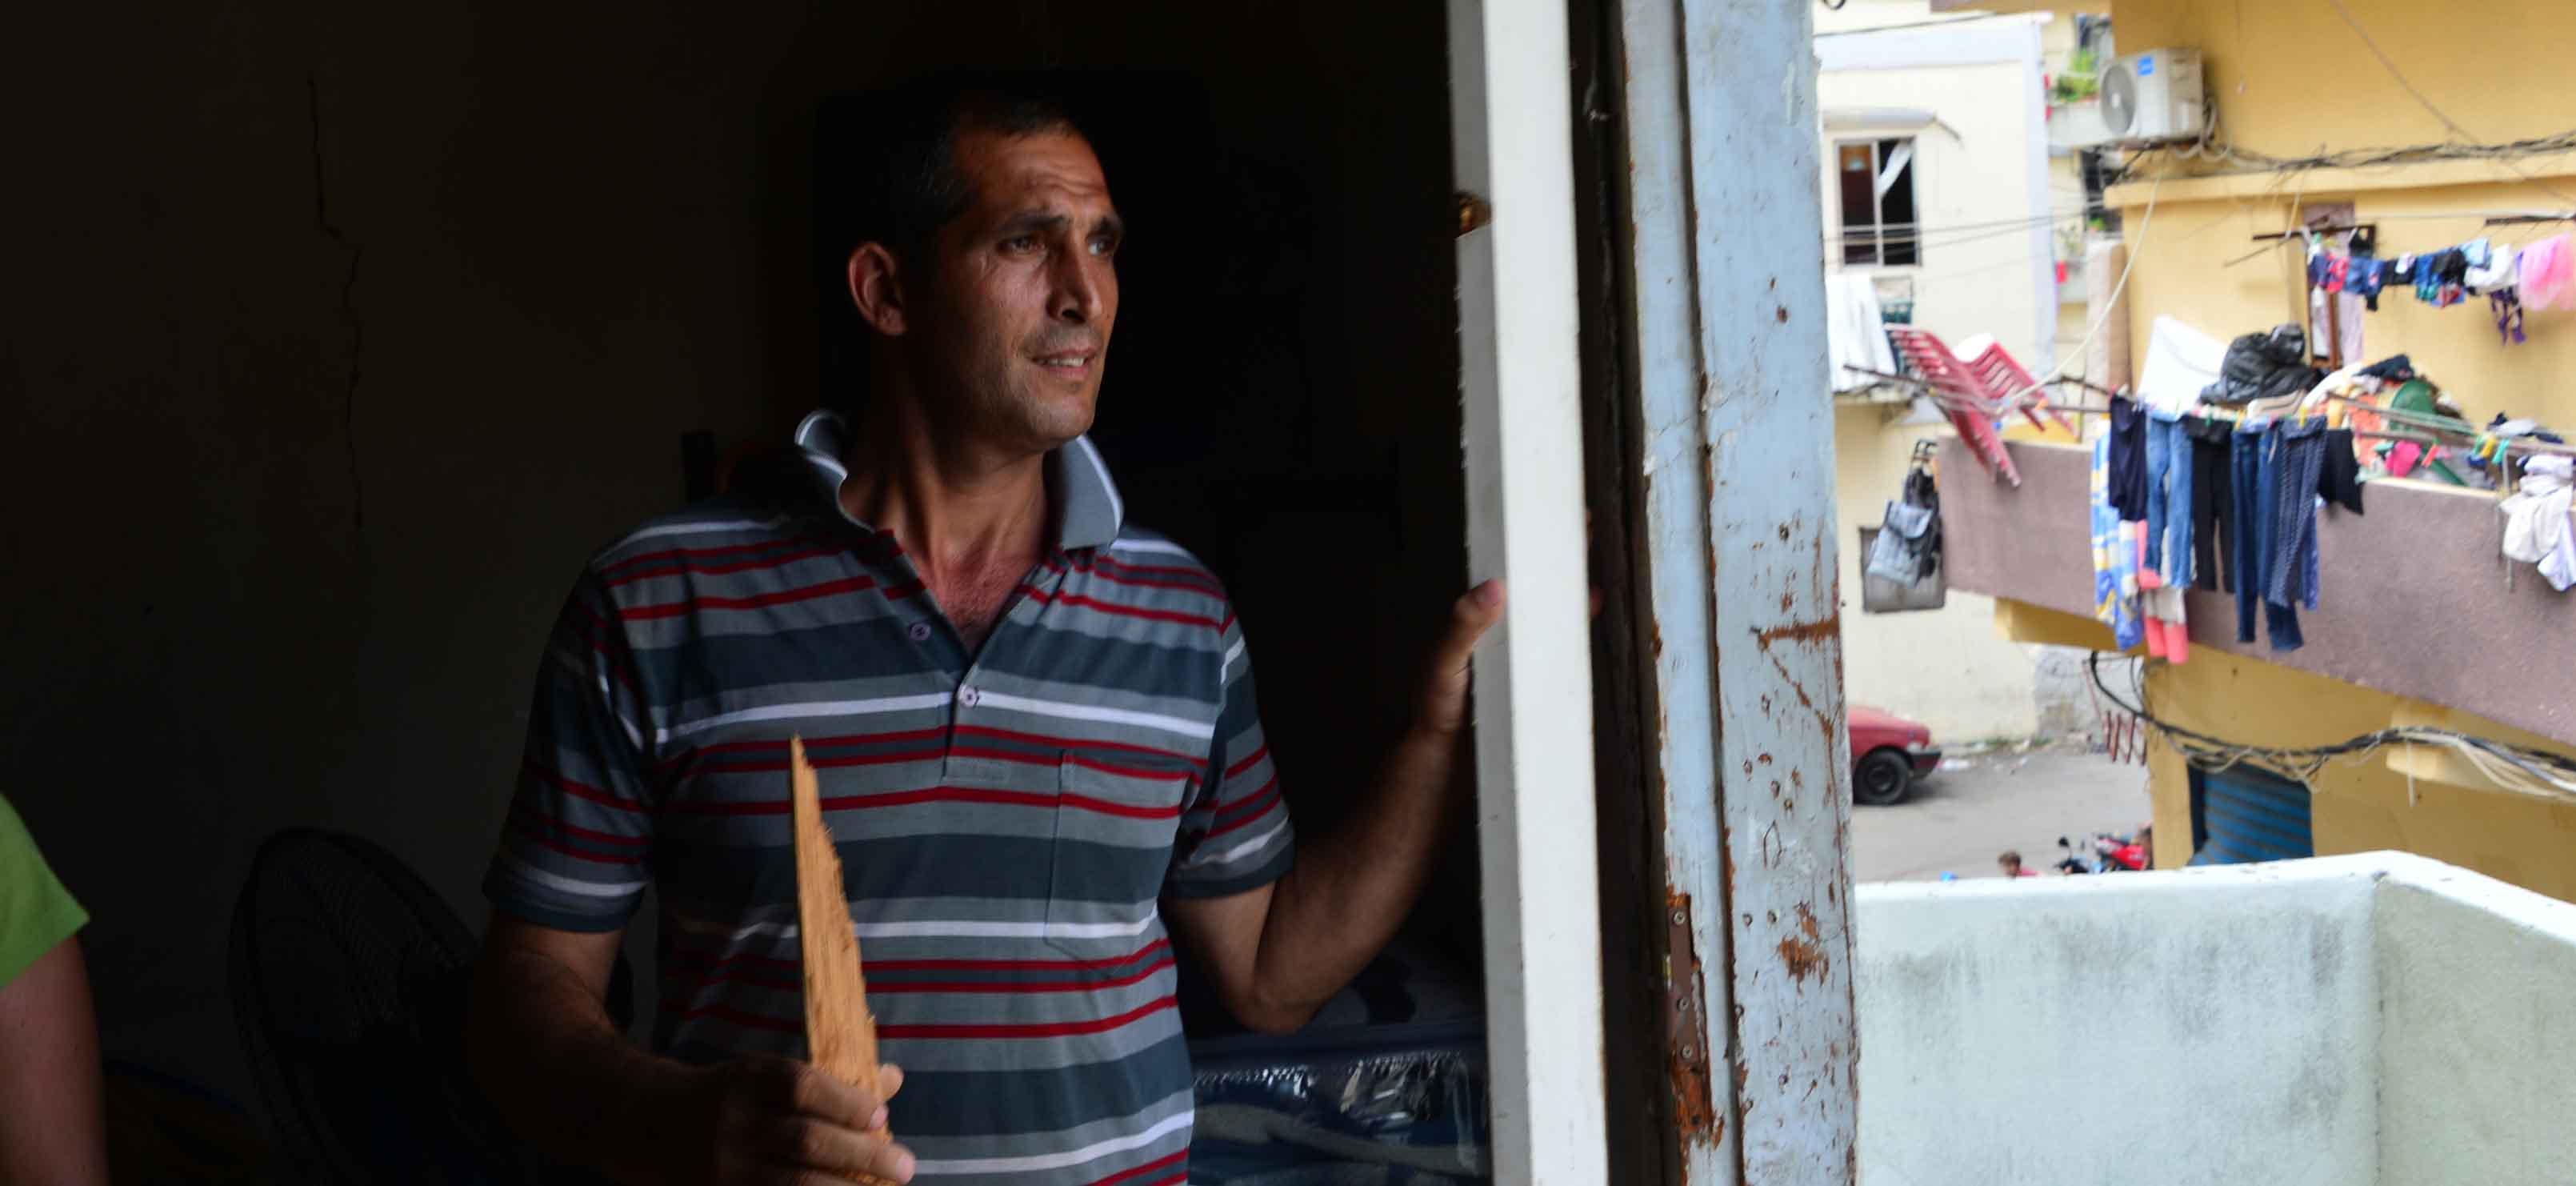 Khayrallah Warde, 40, was on his way home from Tripoli when he heard about the blast. His three children were at home in Beirut, Lebanon in the family's two-room flat and told him the doors blew in off their hinges. Thankfully, they are safe. Unemployed, Khayrallah says he cannot afford to fix the doors to his family's home.